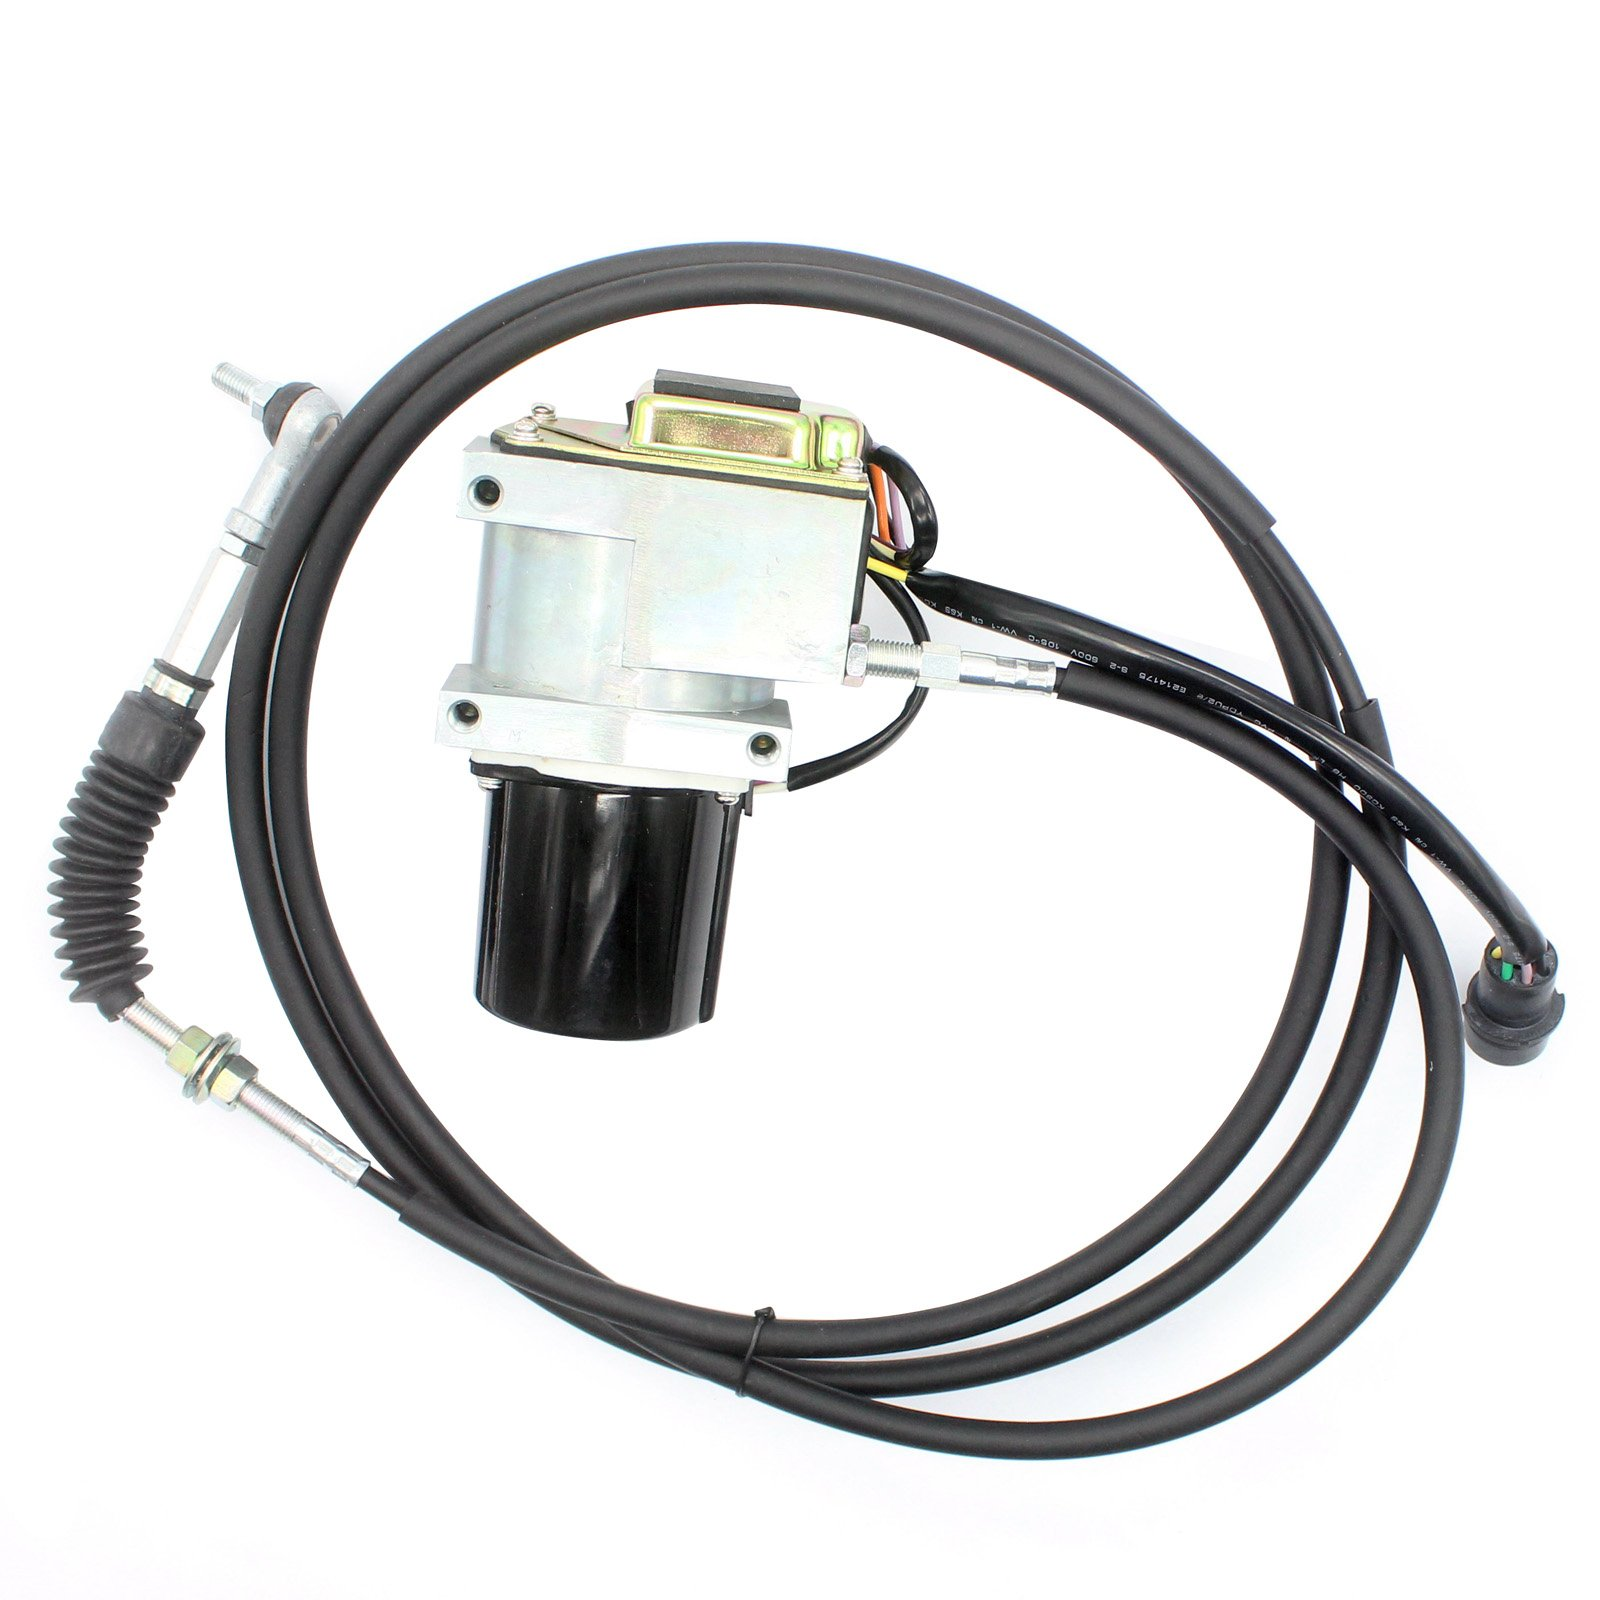 7Y-5571 7Y5571 Round Throttle Motor Single Cable for Caterpillar E330L 330L Excavator Parts 6 Month Warranty